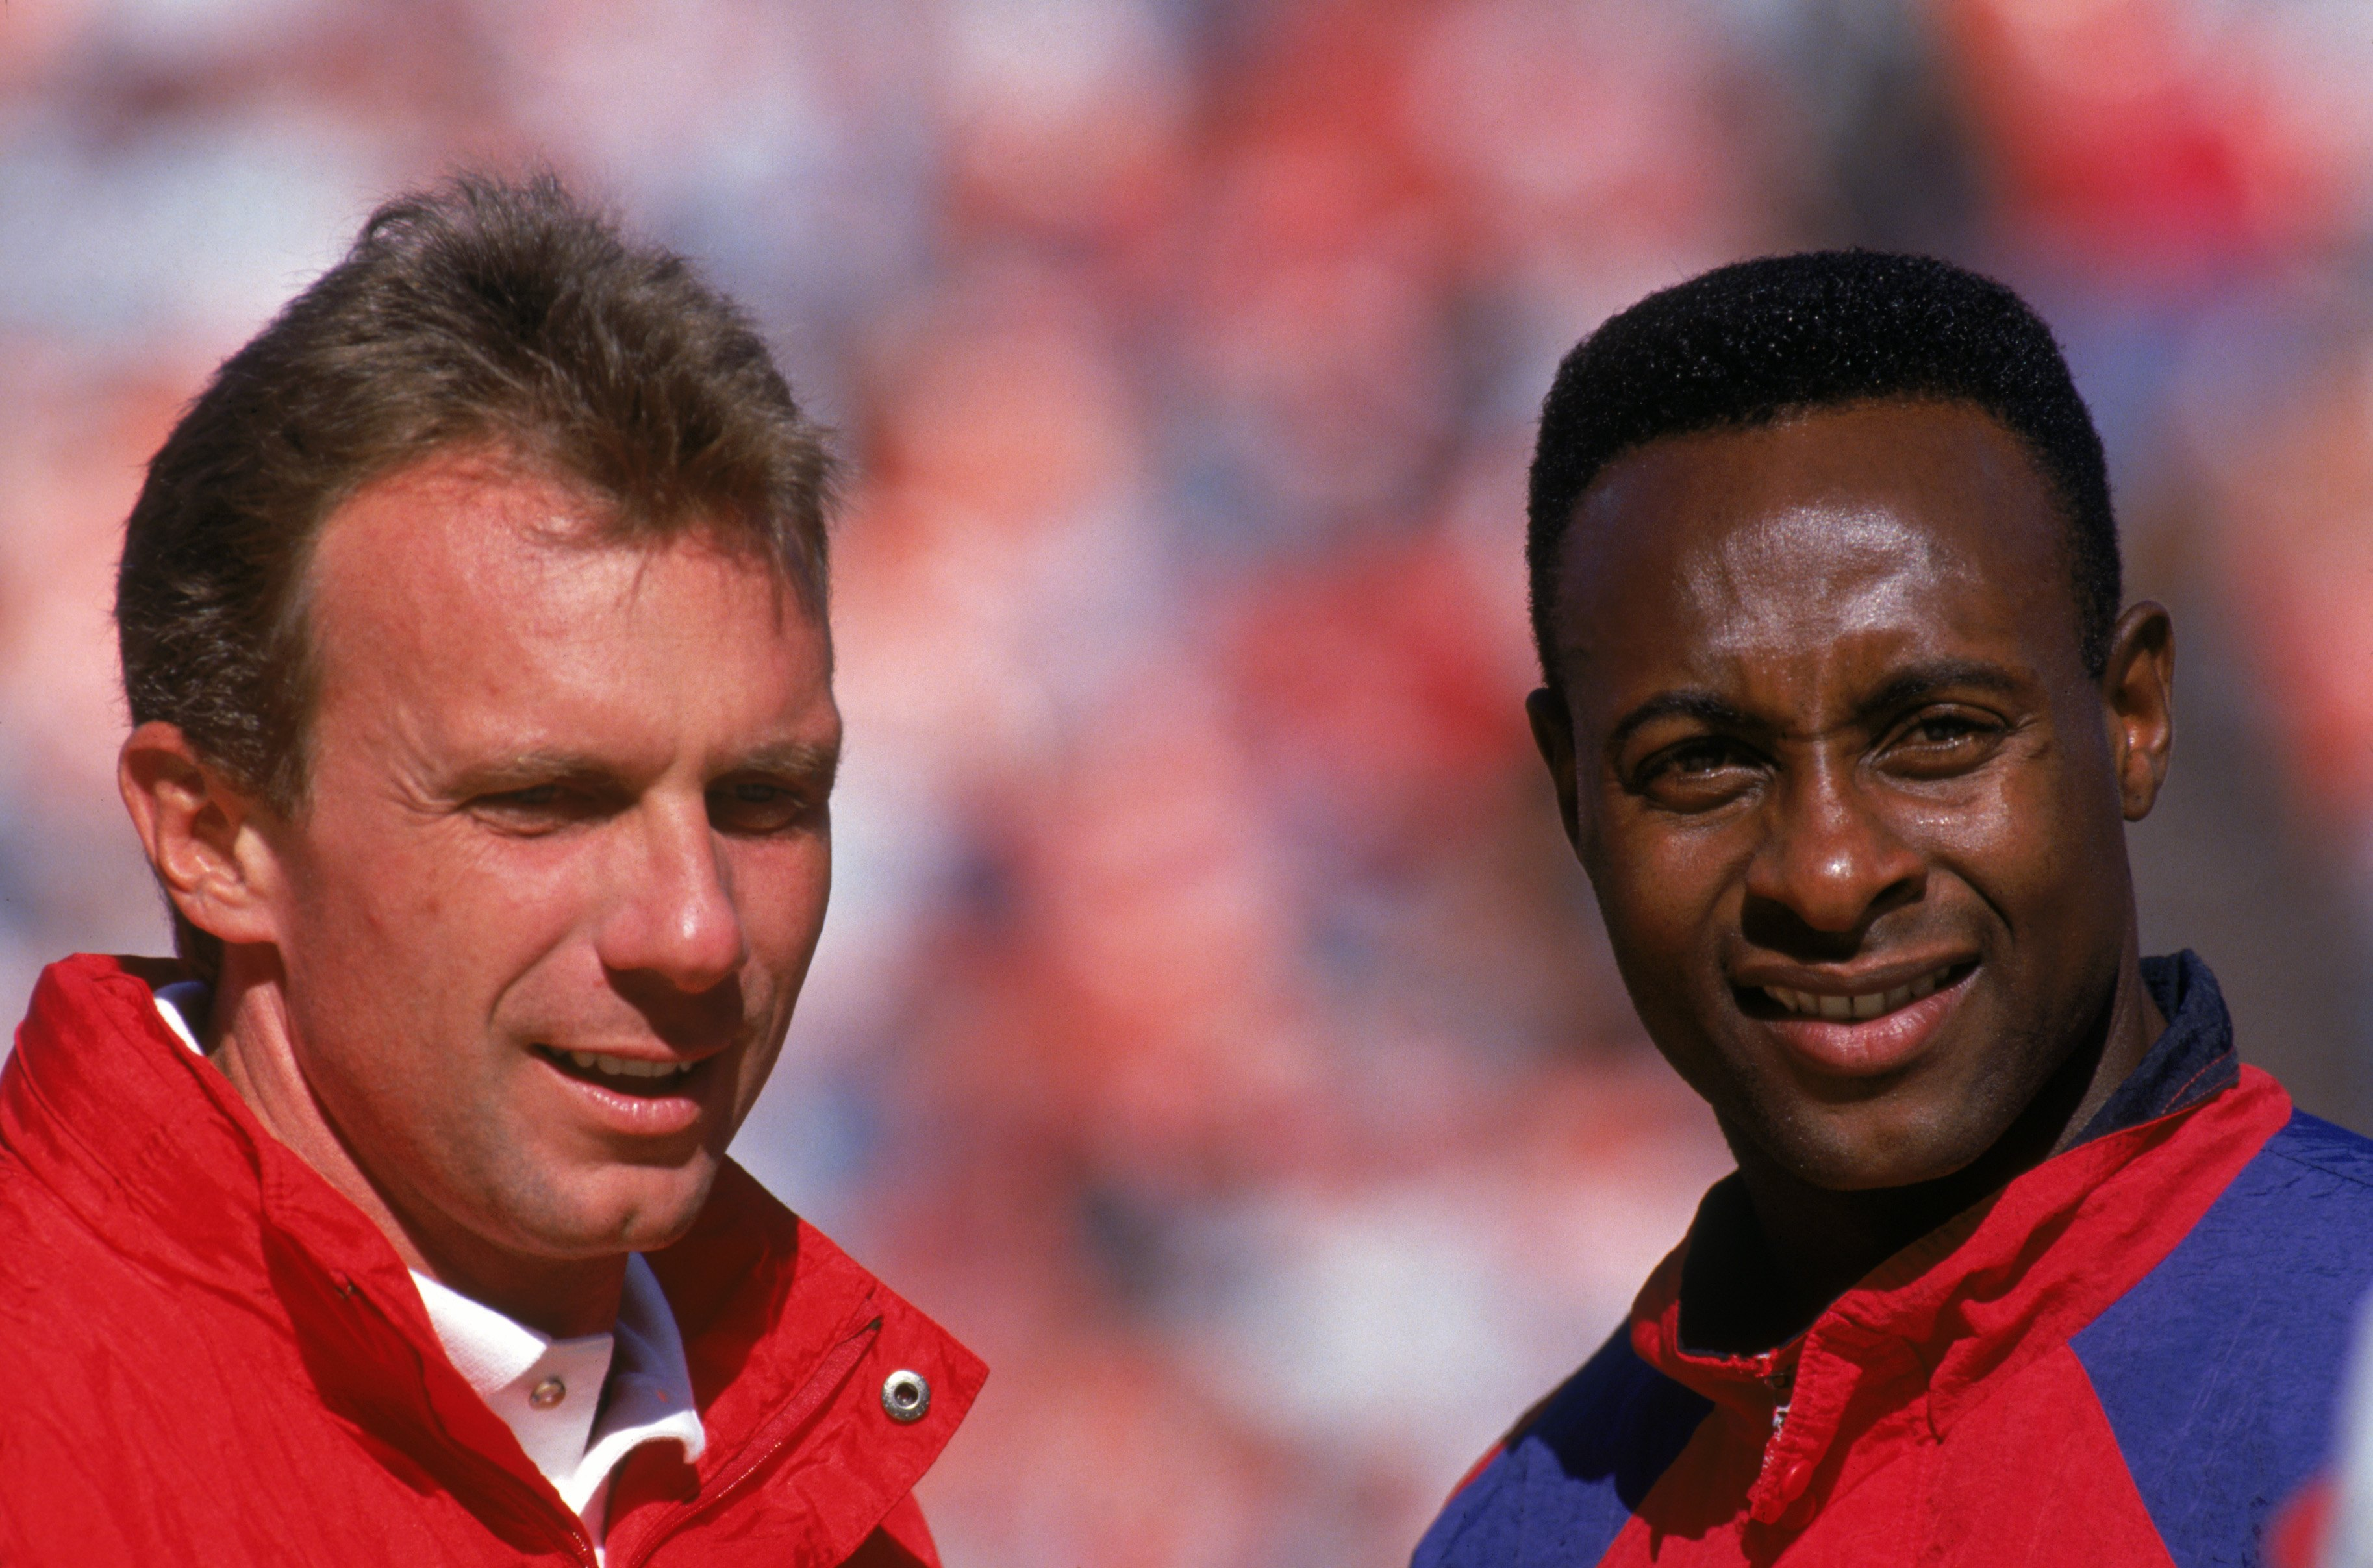 AUGUST 3:  Quarterback Joe Montana #16 and wide receiver Jerry Rice #80 of the San Francisco 49ers look on during a preseason game against the Denver Broncos on August 3, 1992.  The 49ers won 13-7.  (Photo by George Rose/Getty Images)